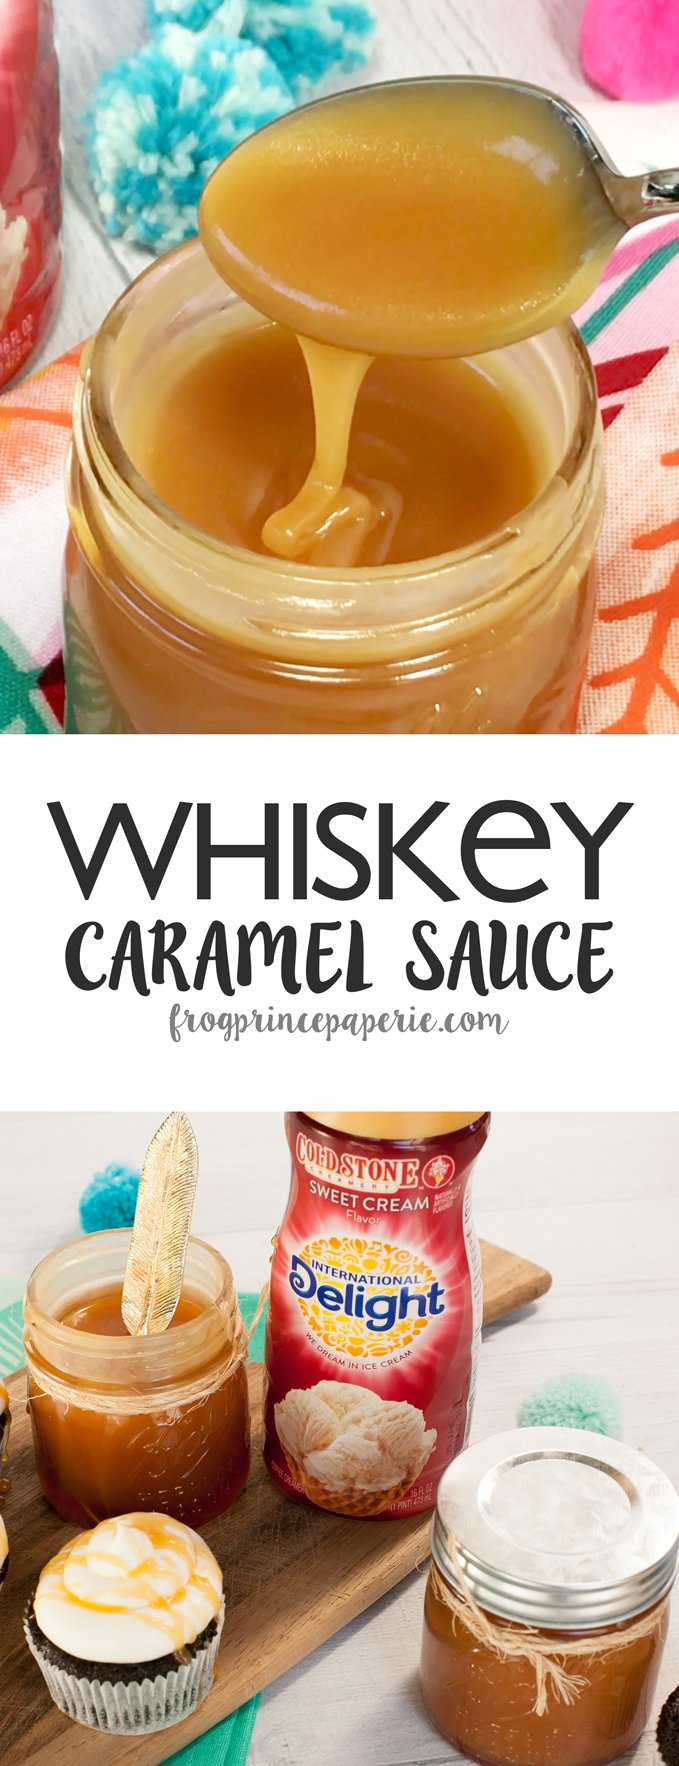 Make this show-stopping whiskey caramel sauce recipe at home with International Delight!